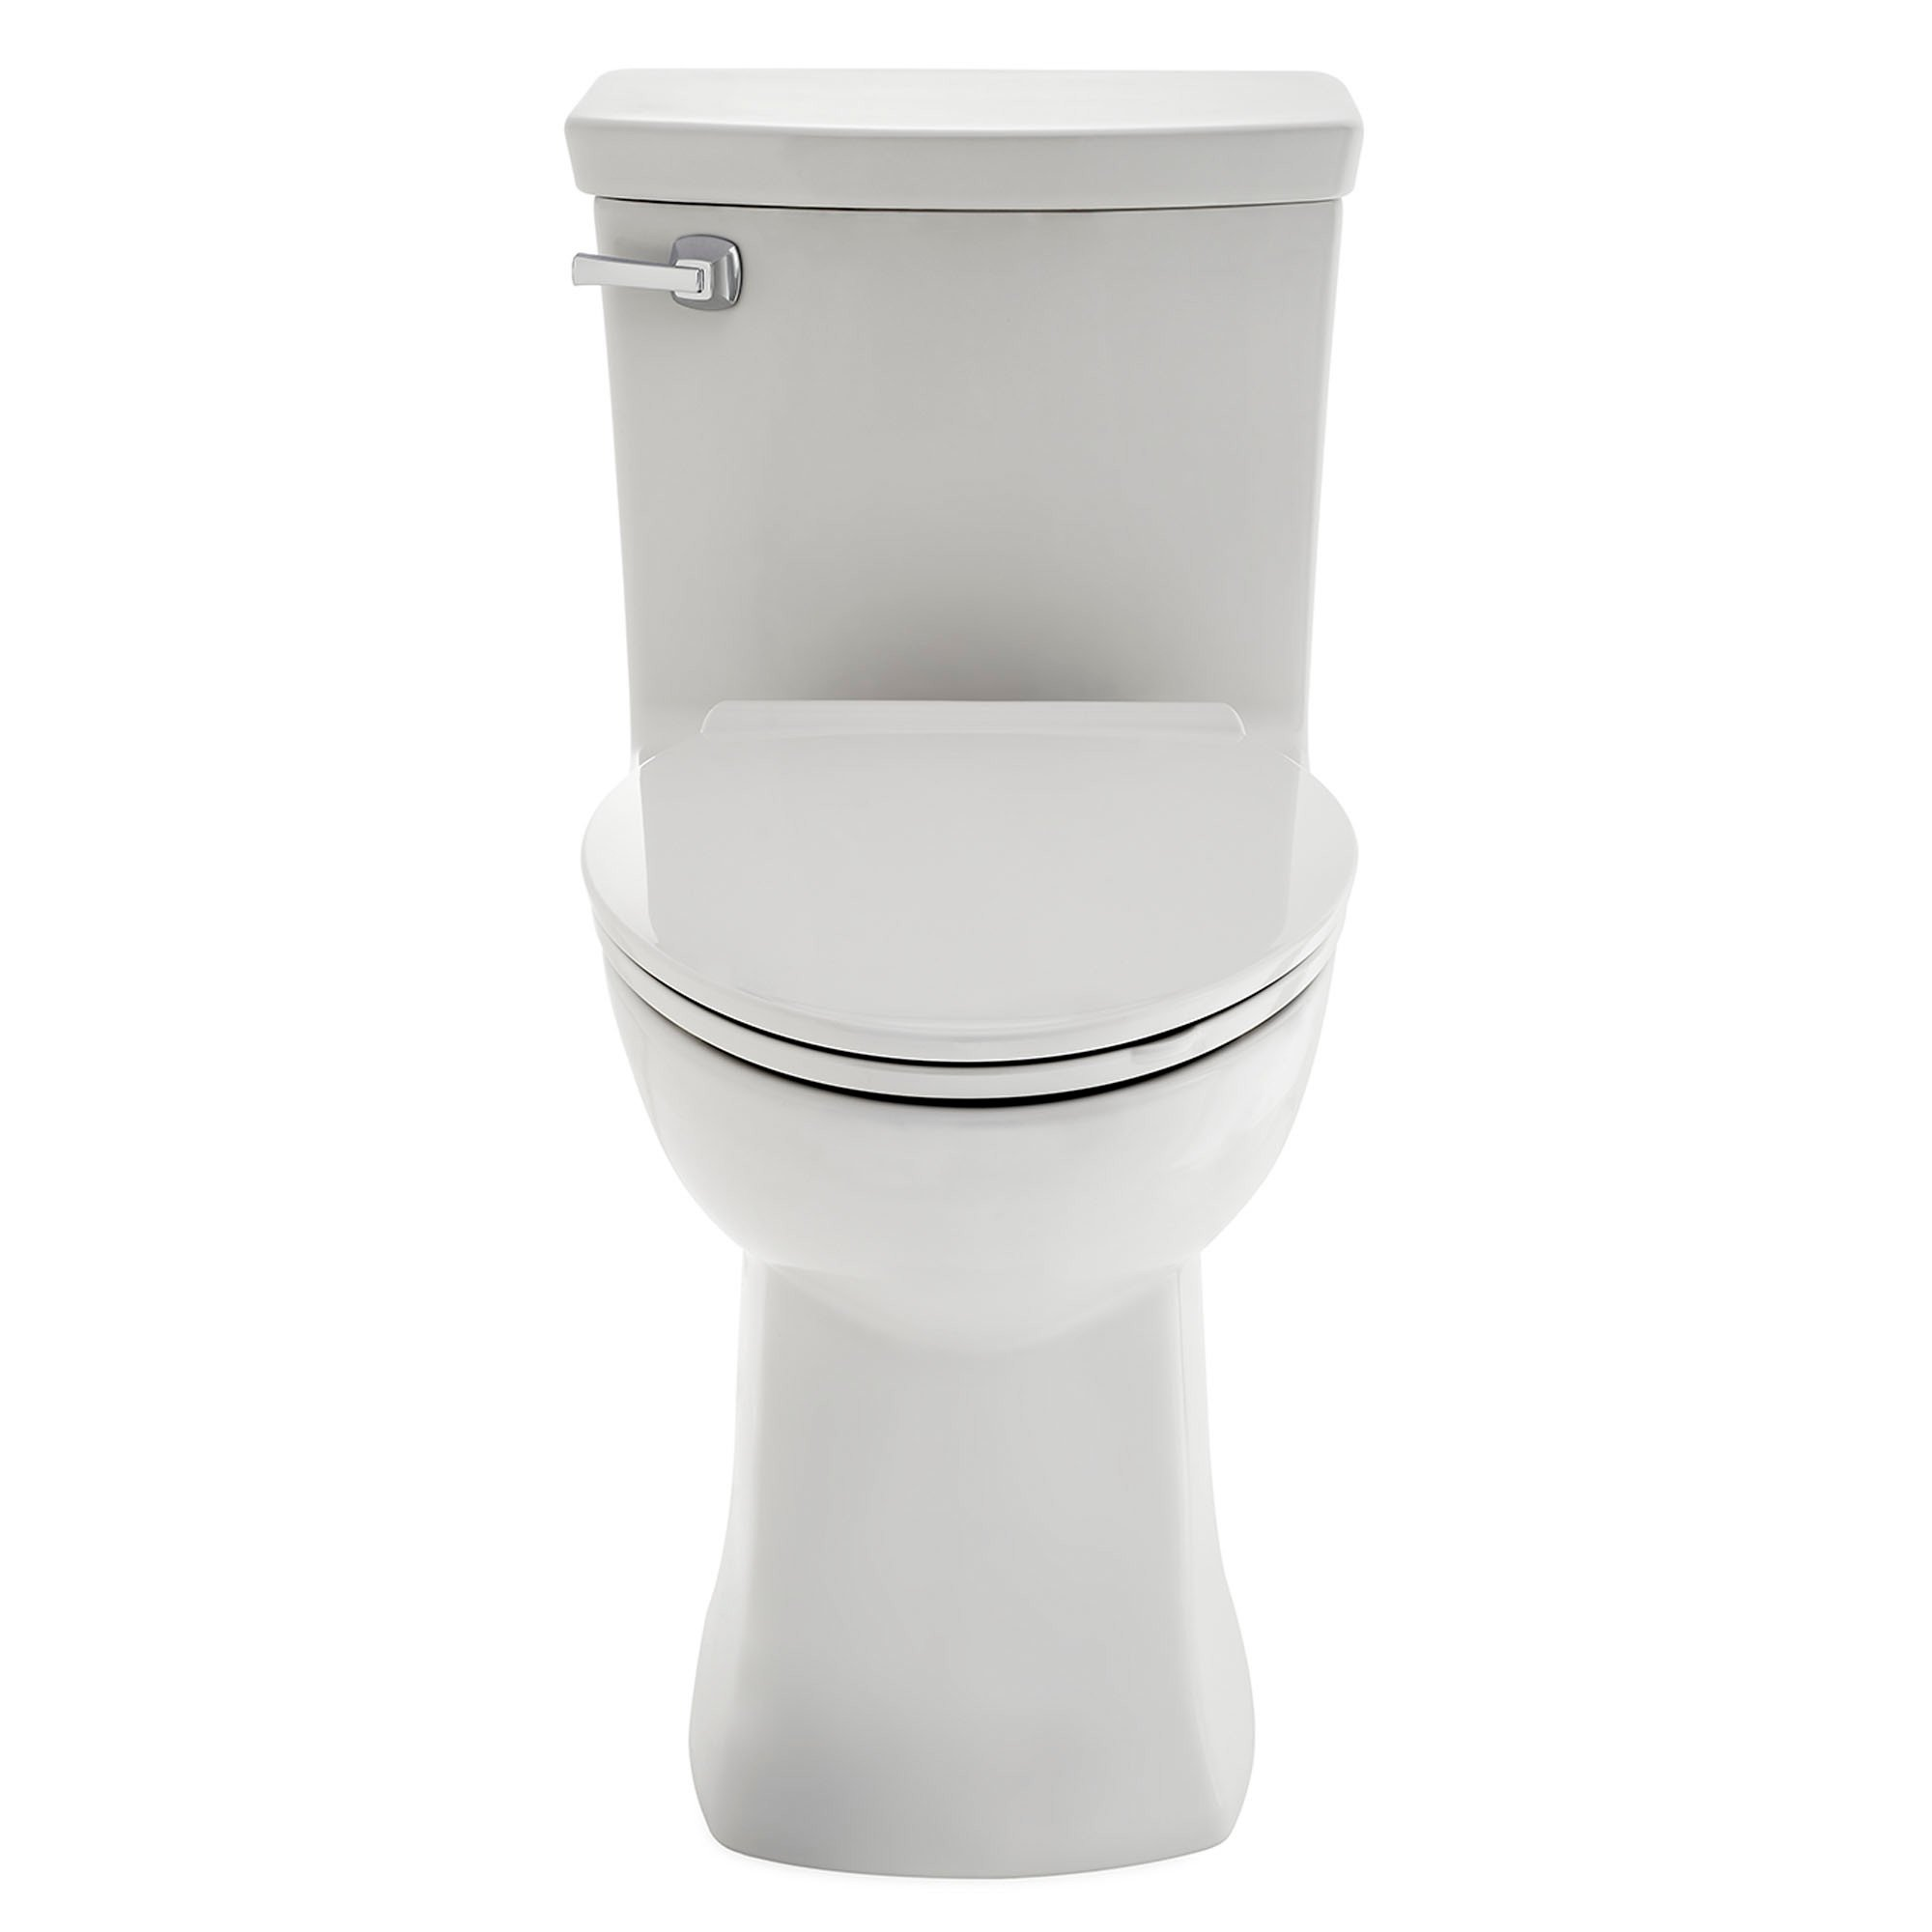 American Standard 2922A104.020 Townsend Vormax Right Height Elongated One-Piece Toilet with Seat, White